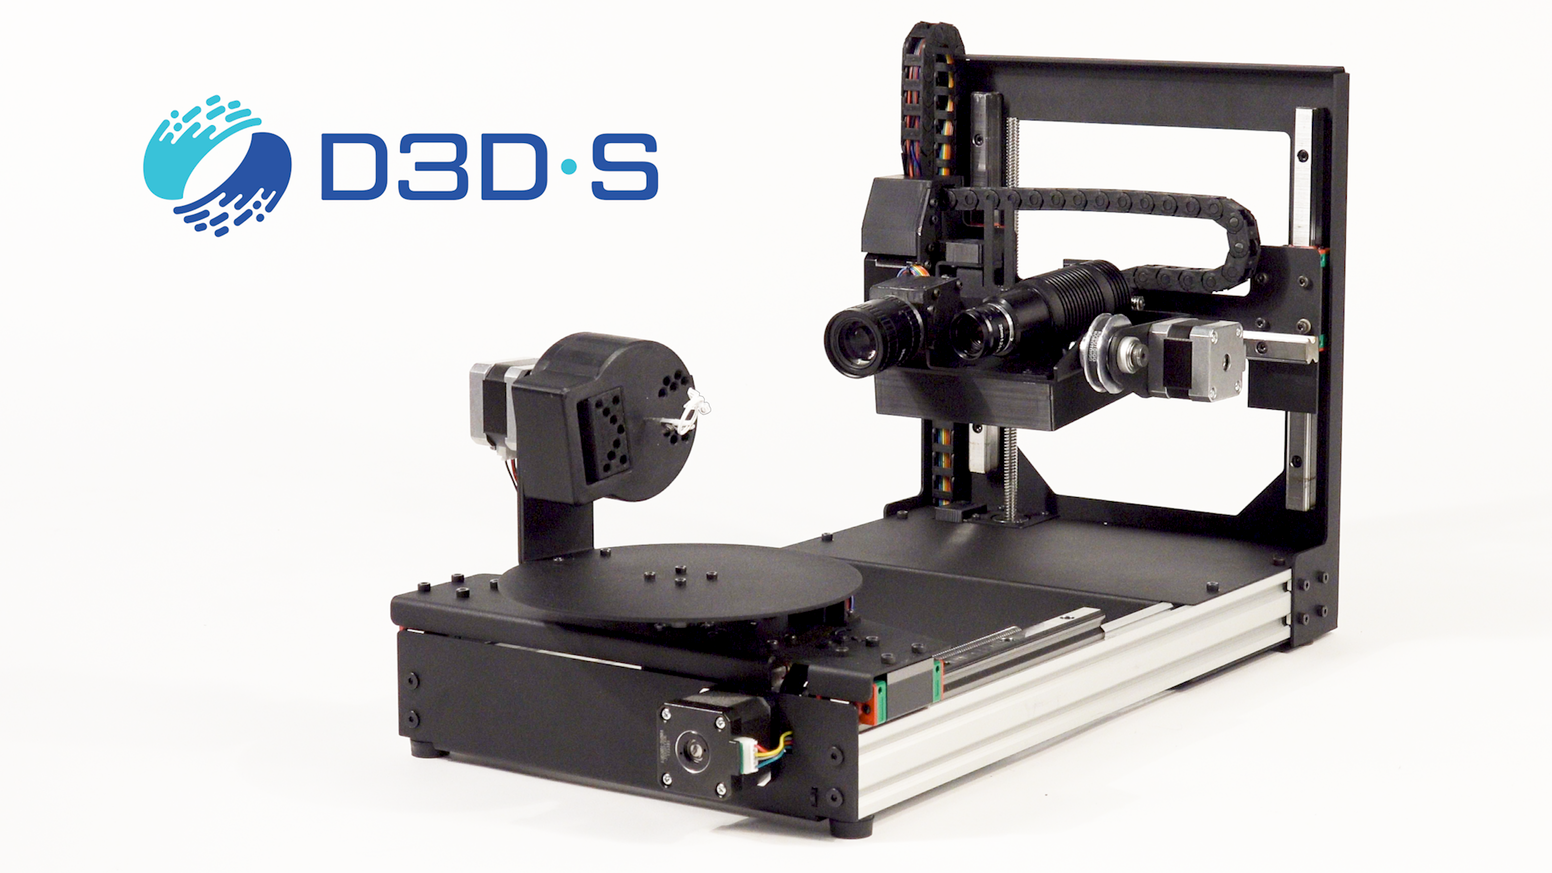 Our D3D-s scanner takes advantage of LED-line technology, combining incredible accuracy and a price you can afford.